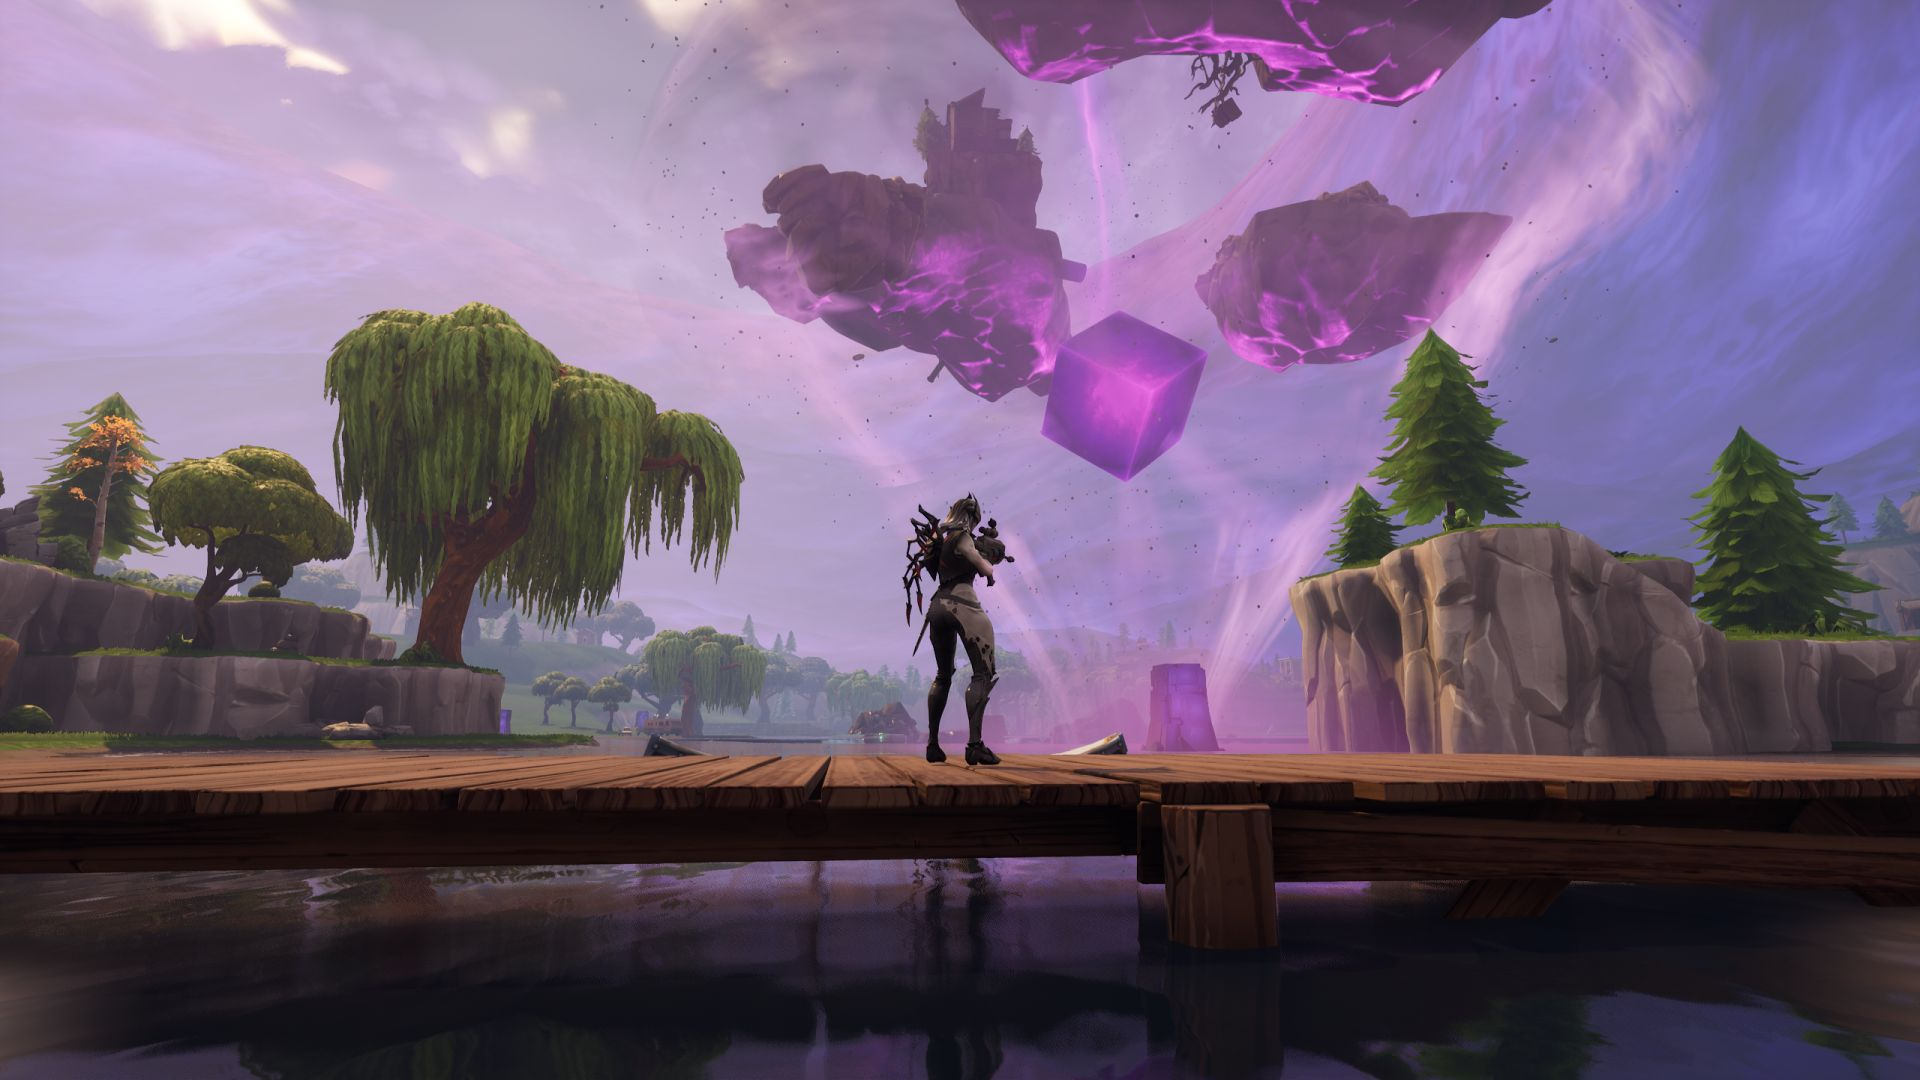 Fortnite Screenshot 2018.10.25 – 12.13.44.02